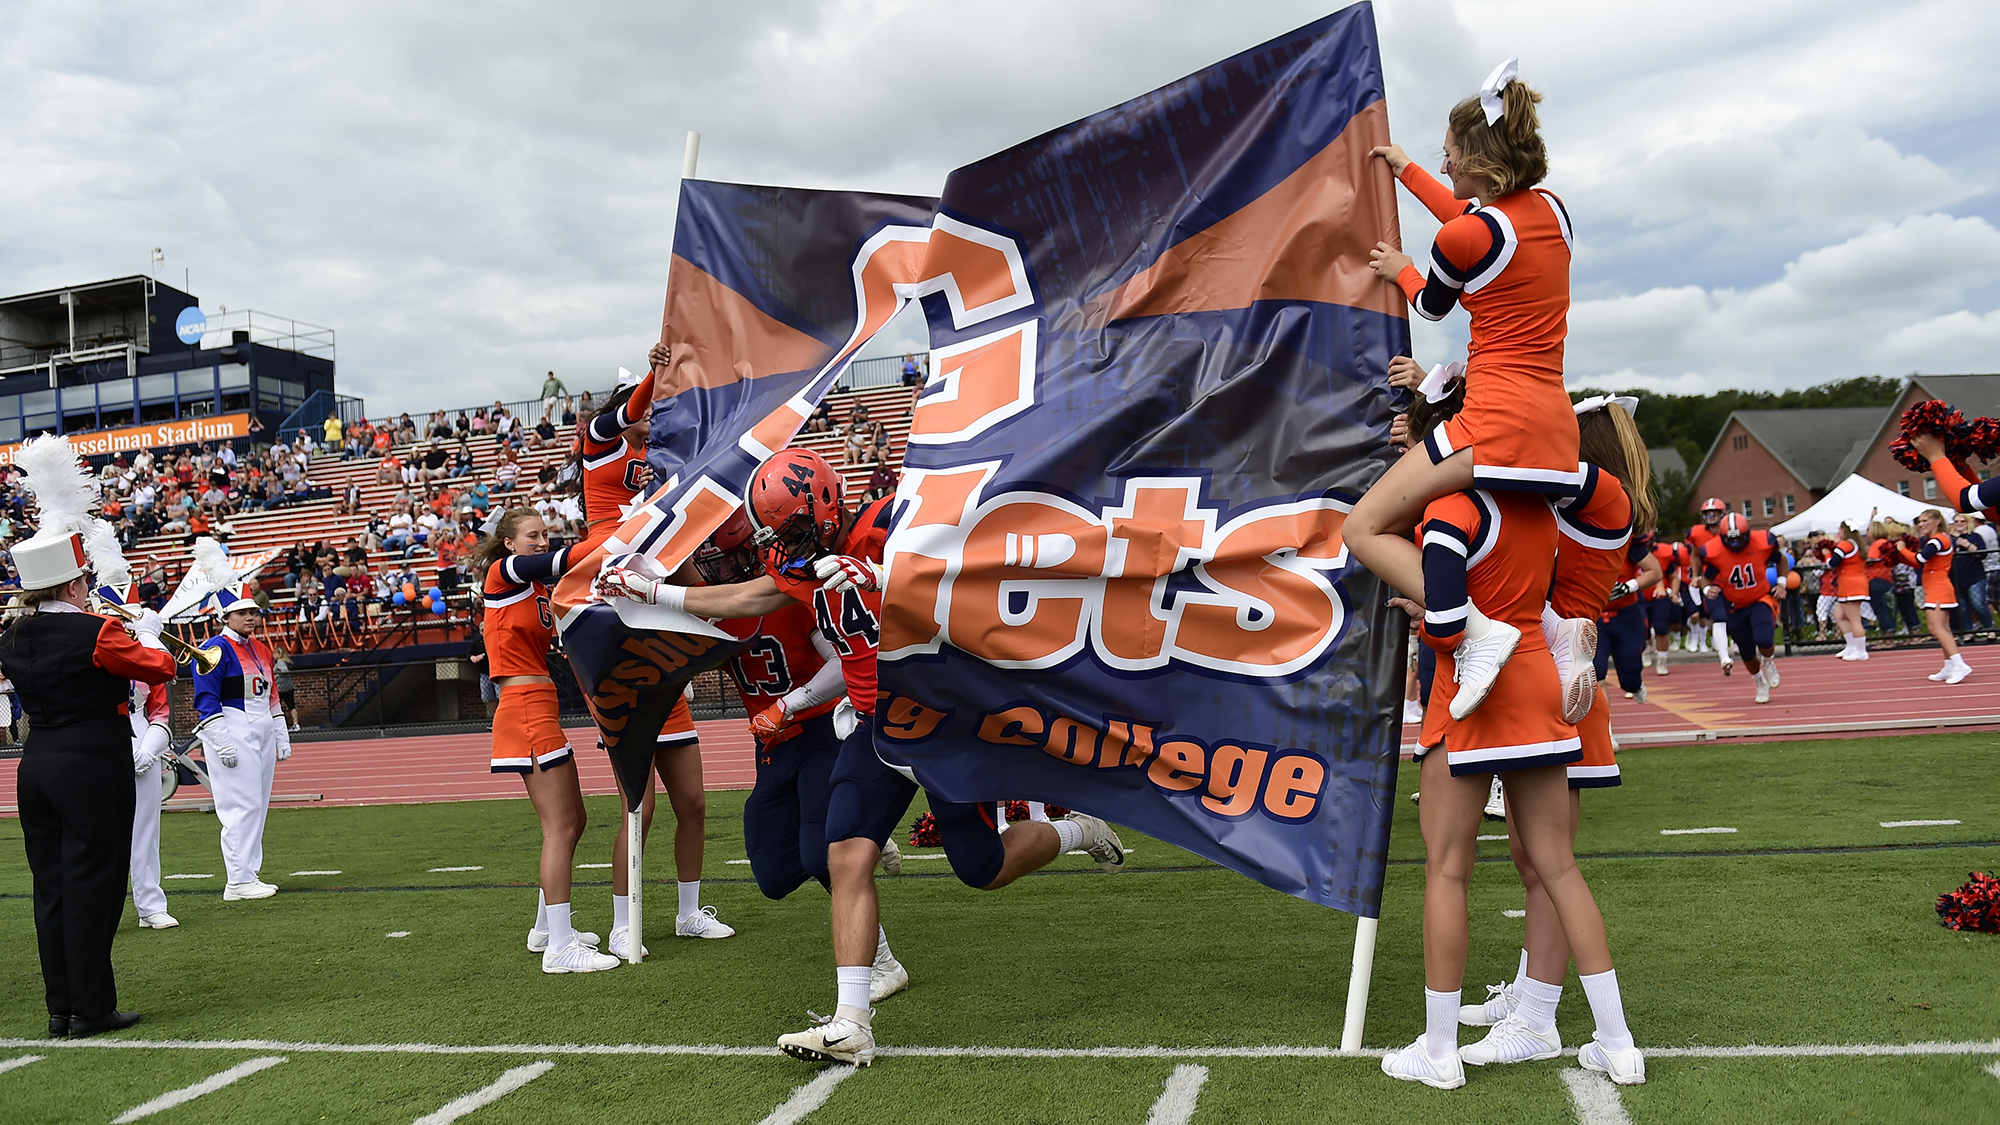 Gettysburg has dropped its first four games to start the year (Photo courtesy of Gettysburg College Athletics)